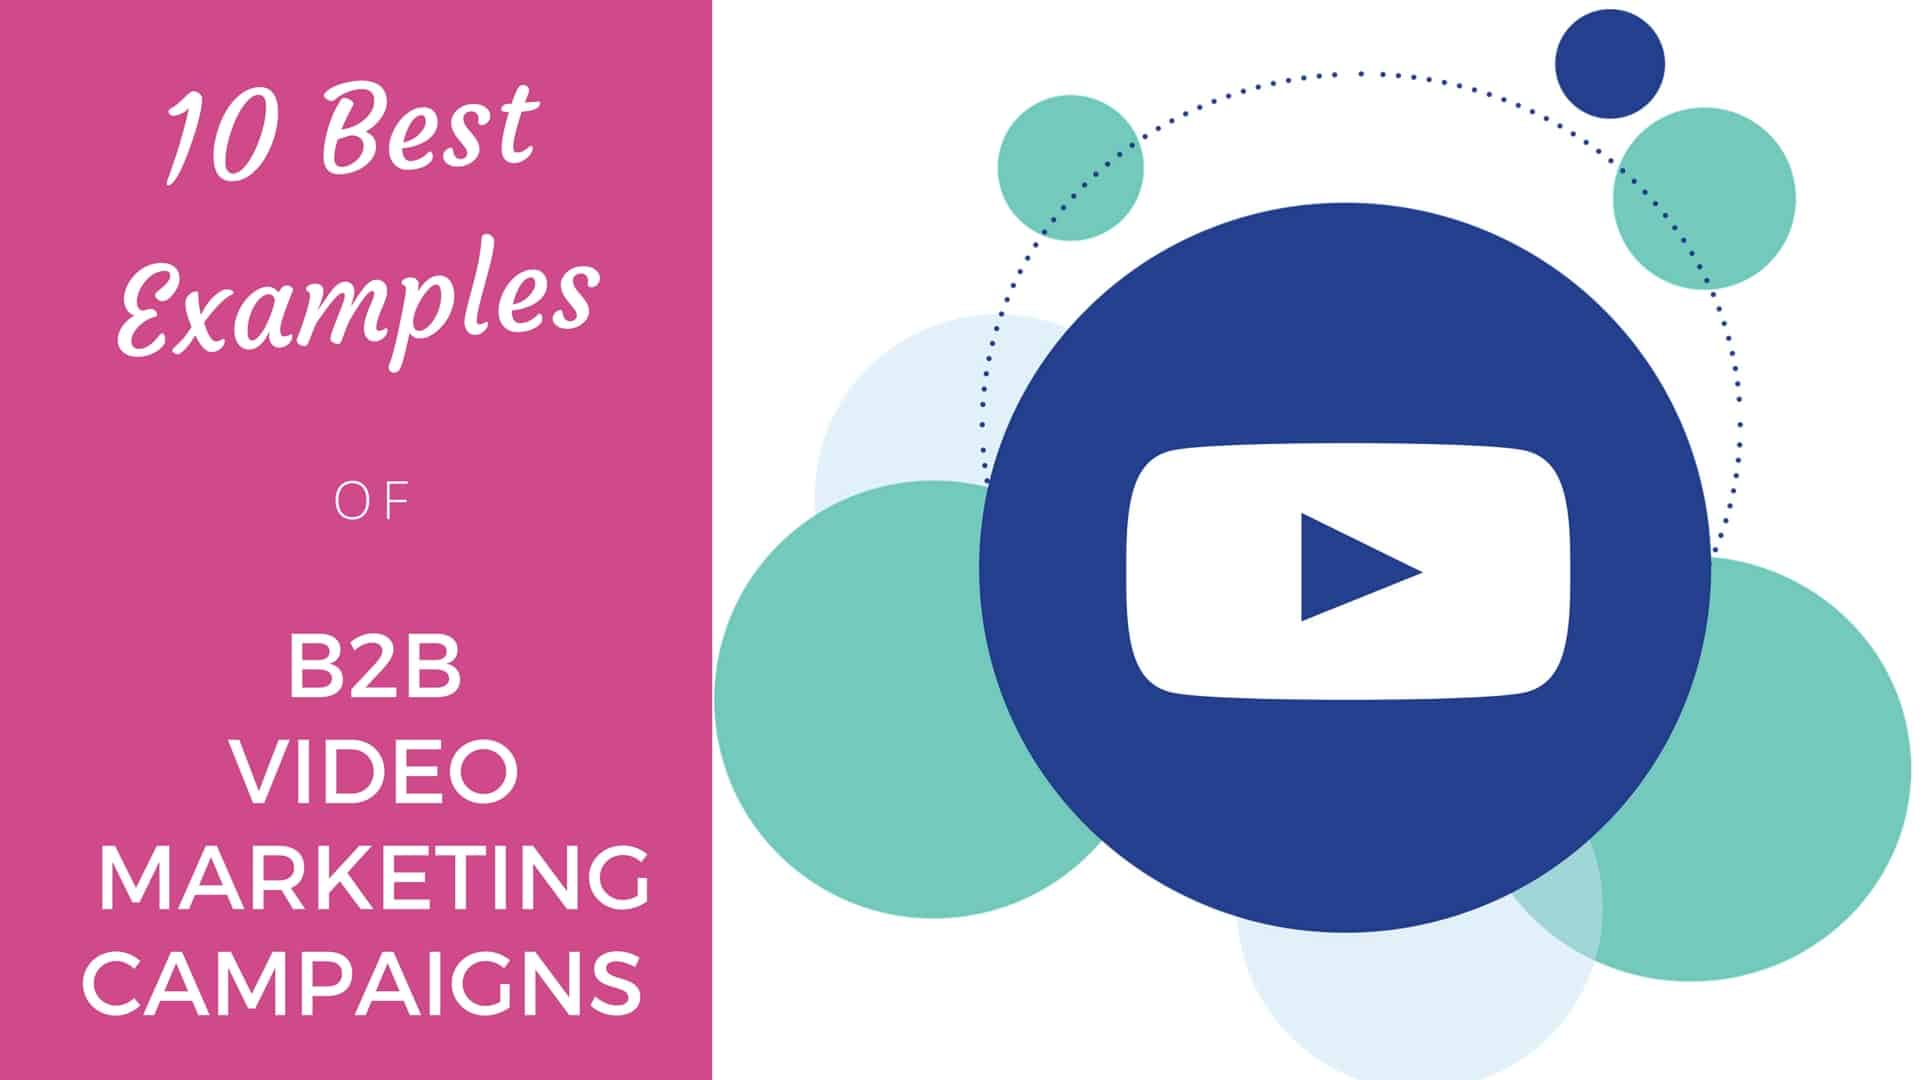 10 Best Examples Of B2B Video Marketing Campaigns [2018 Edition]